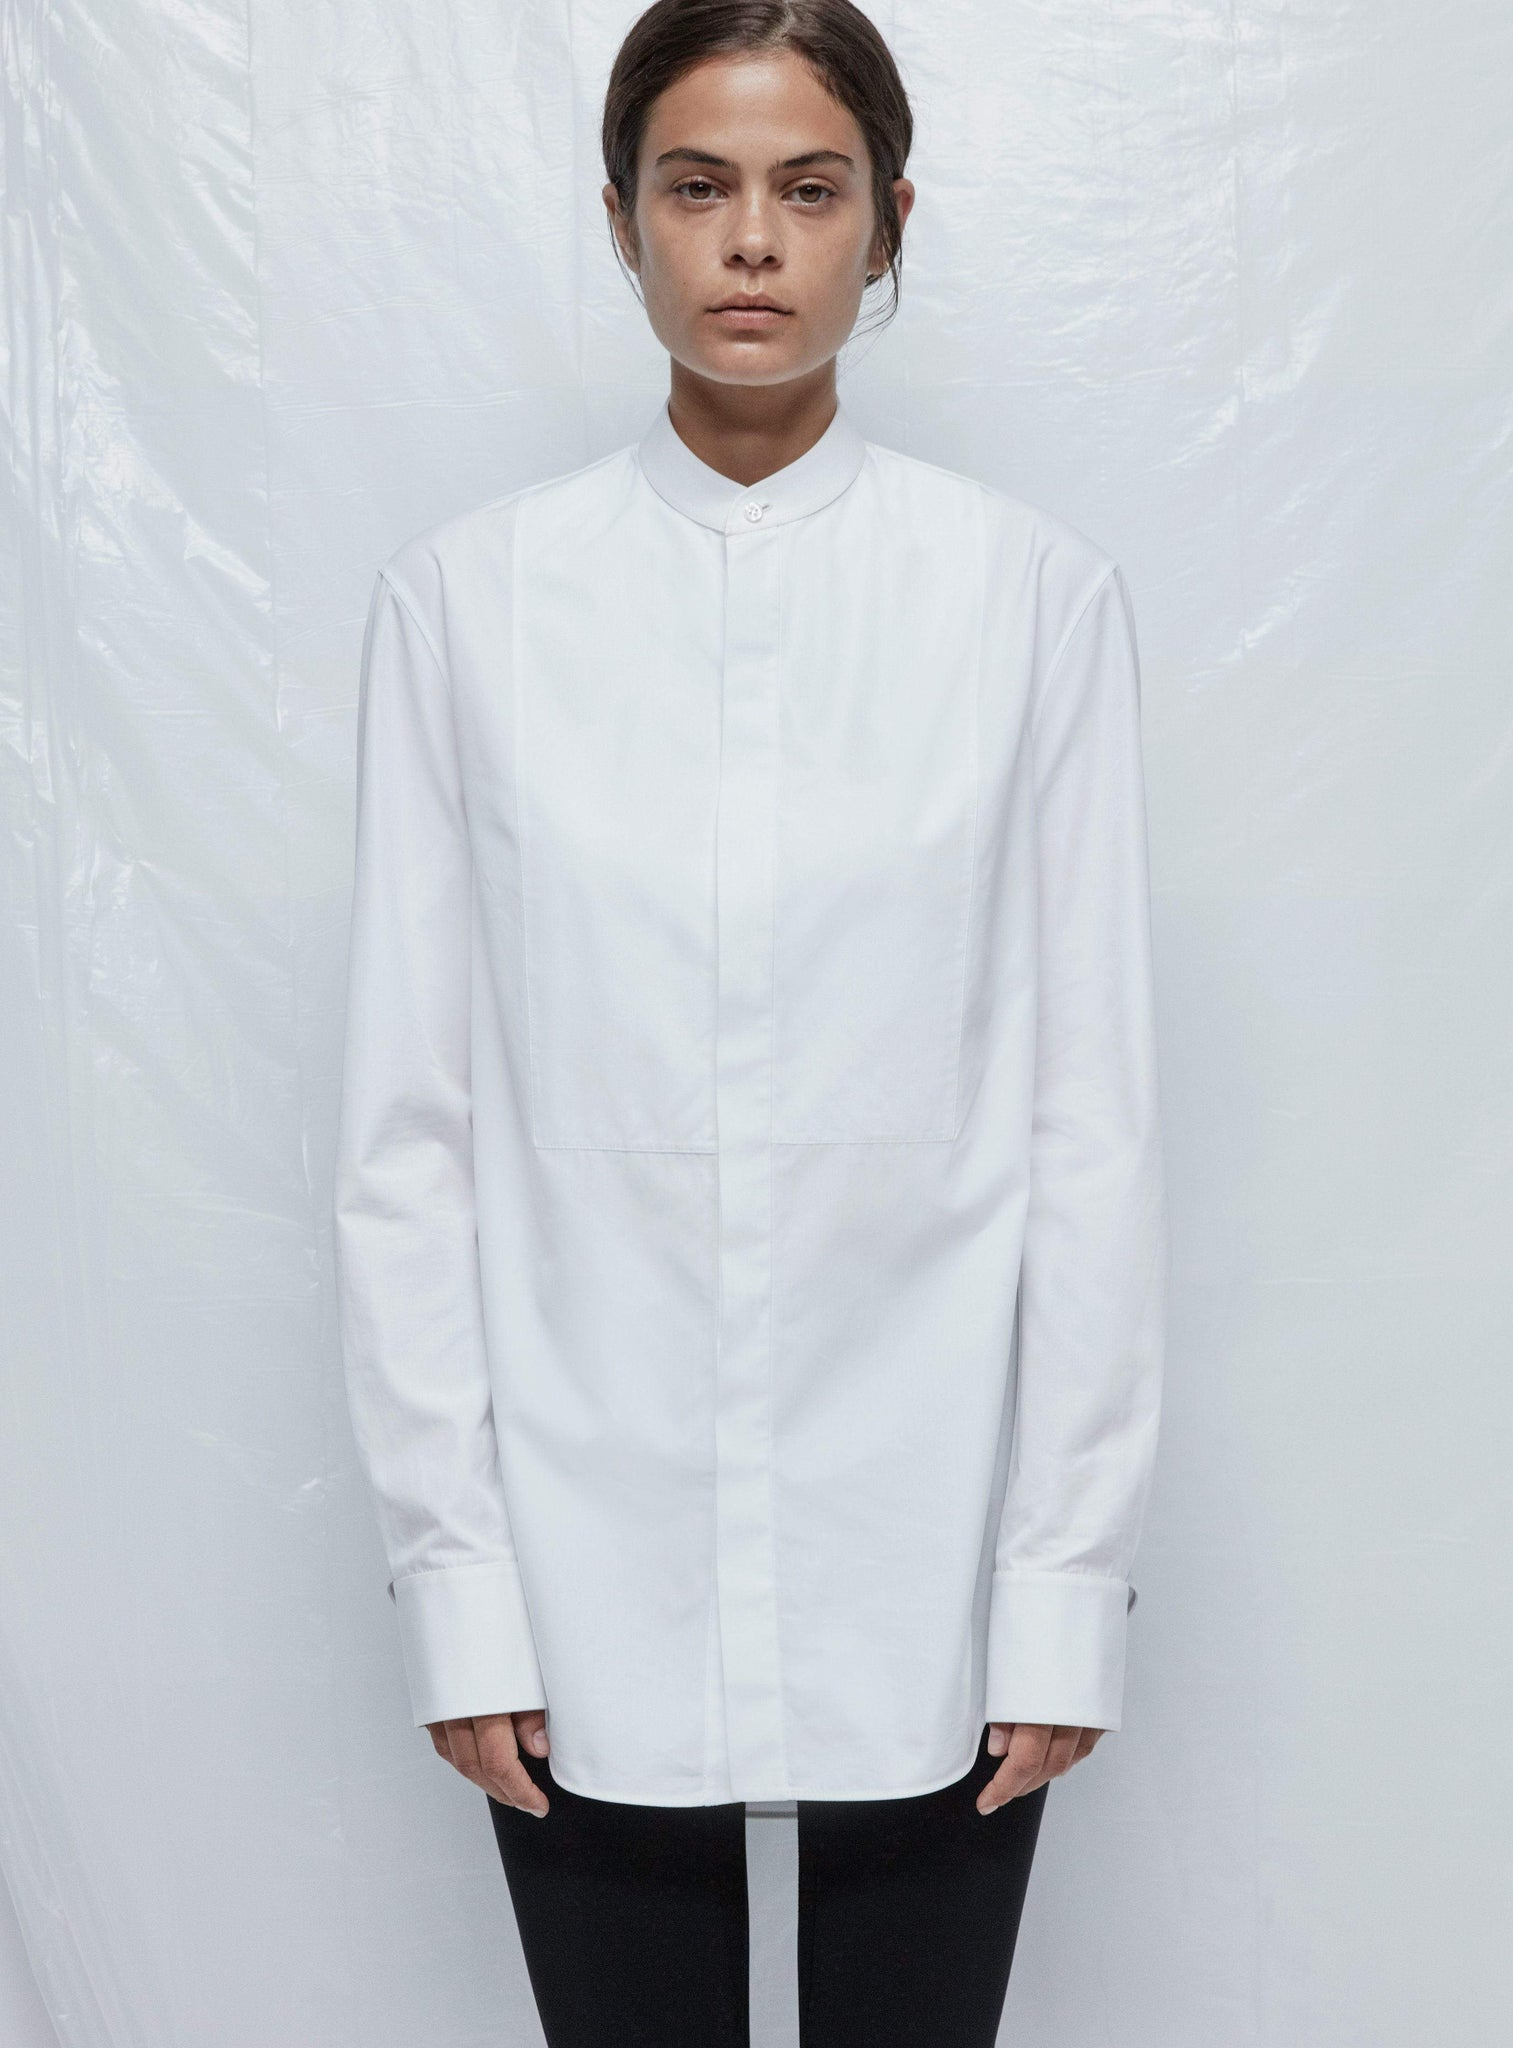 Wardrobe NYC Tops Shirt |W01